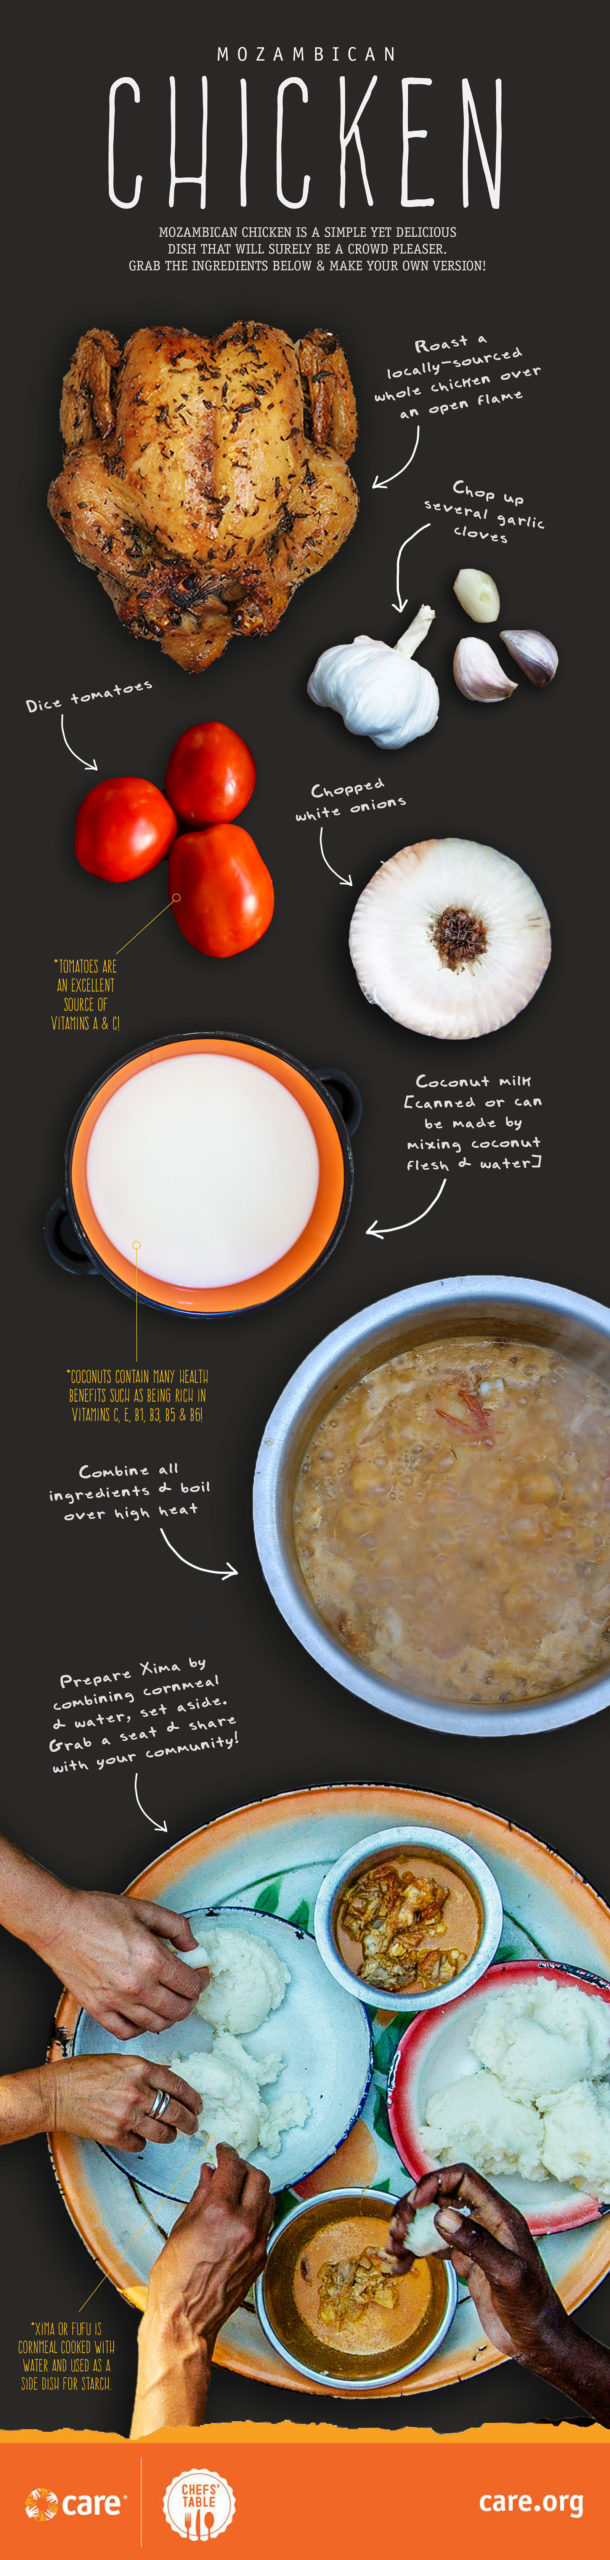 A graphic featuring ingredients and instructions to make Mozambican chicken.